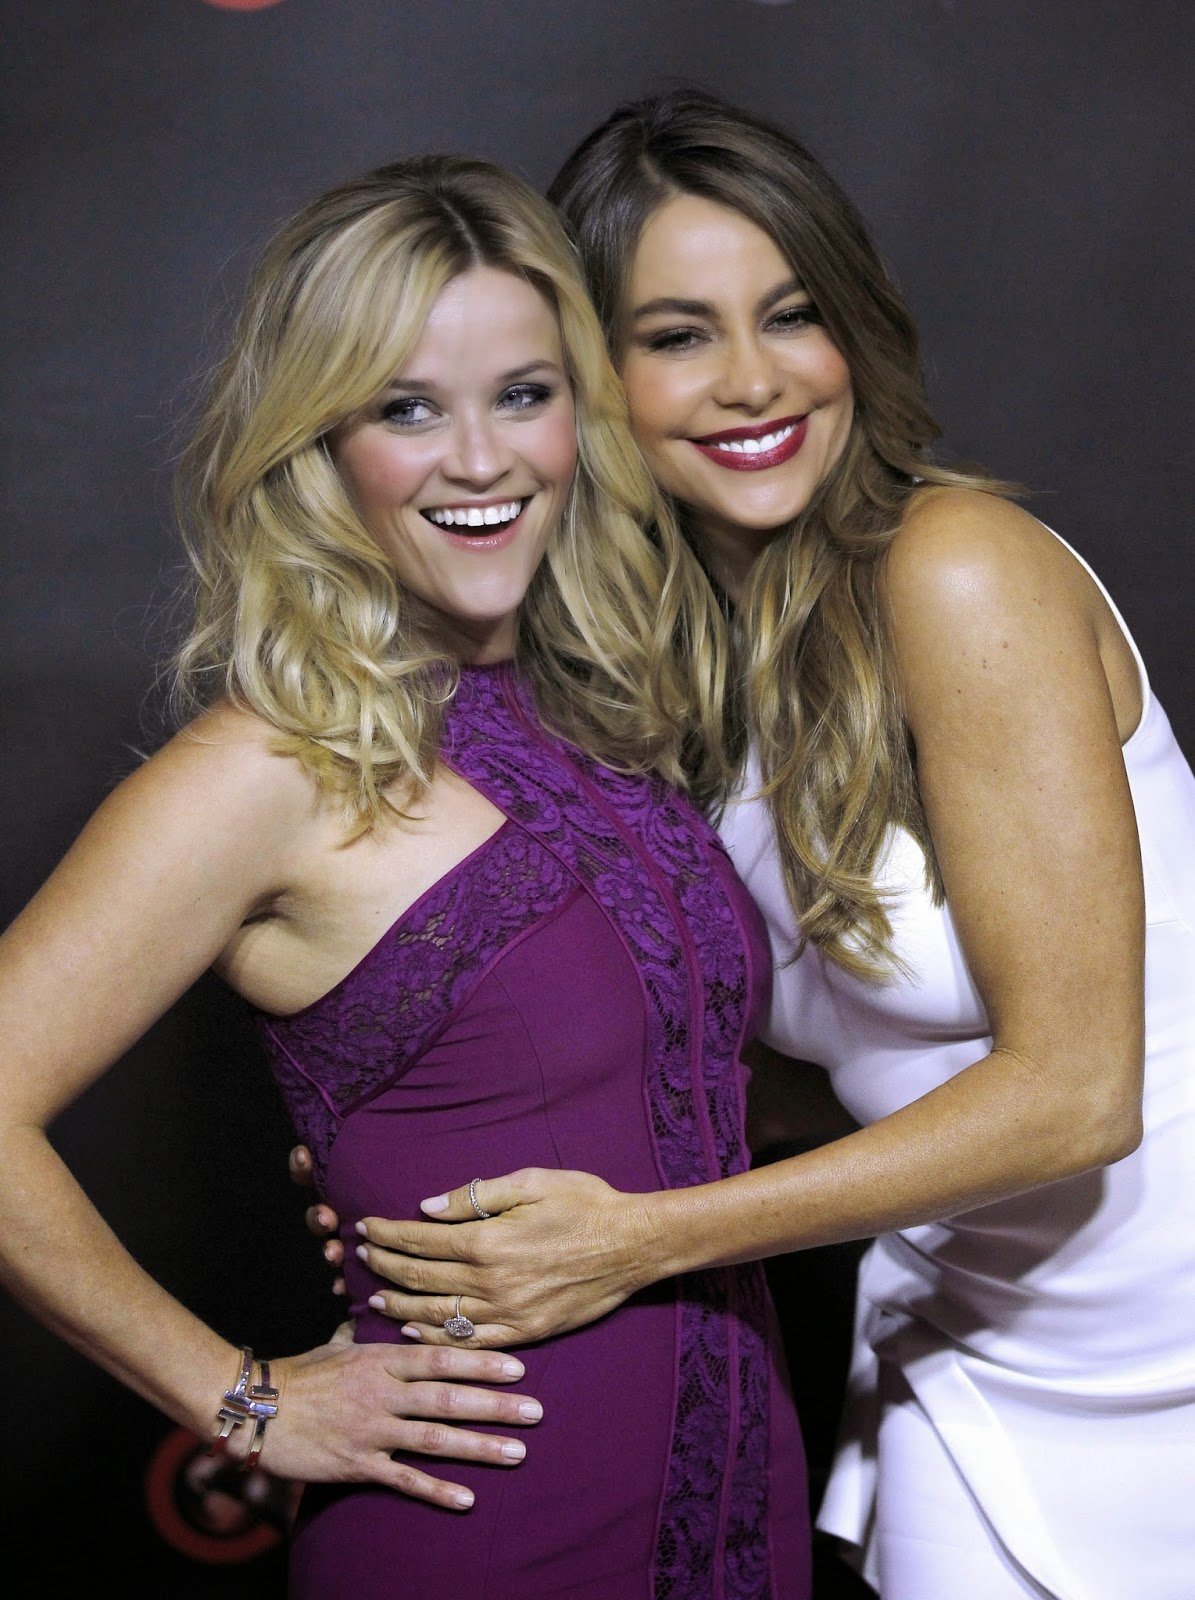 Sofia Vergara And Reese Witherspoon Make A Great Pair